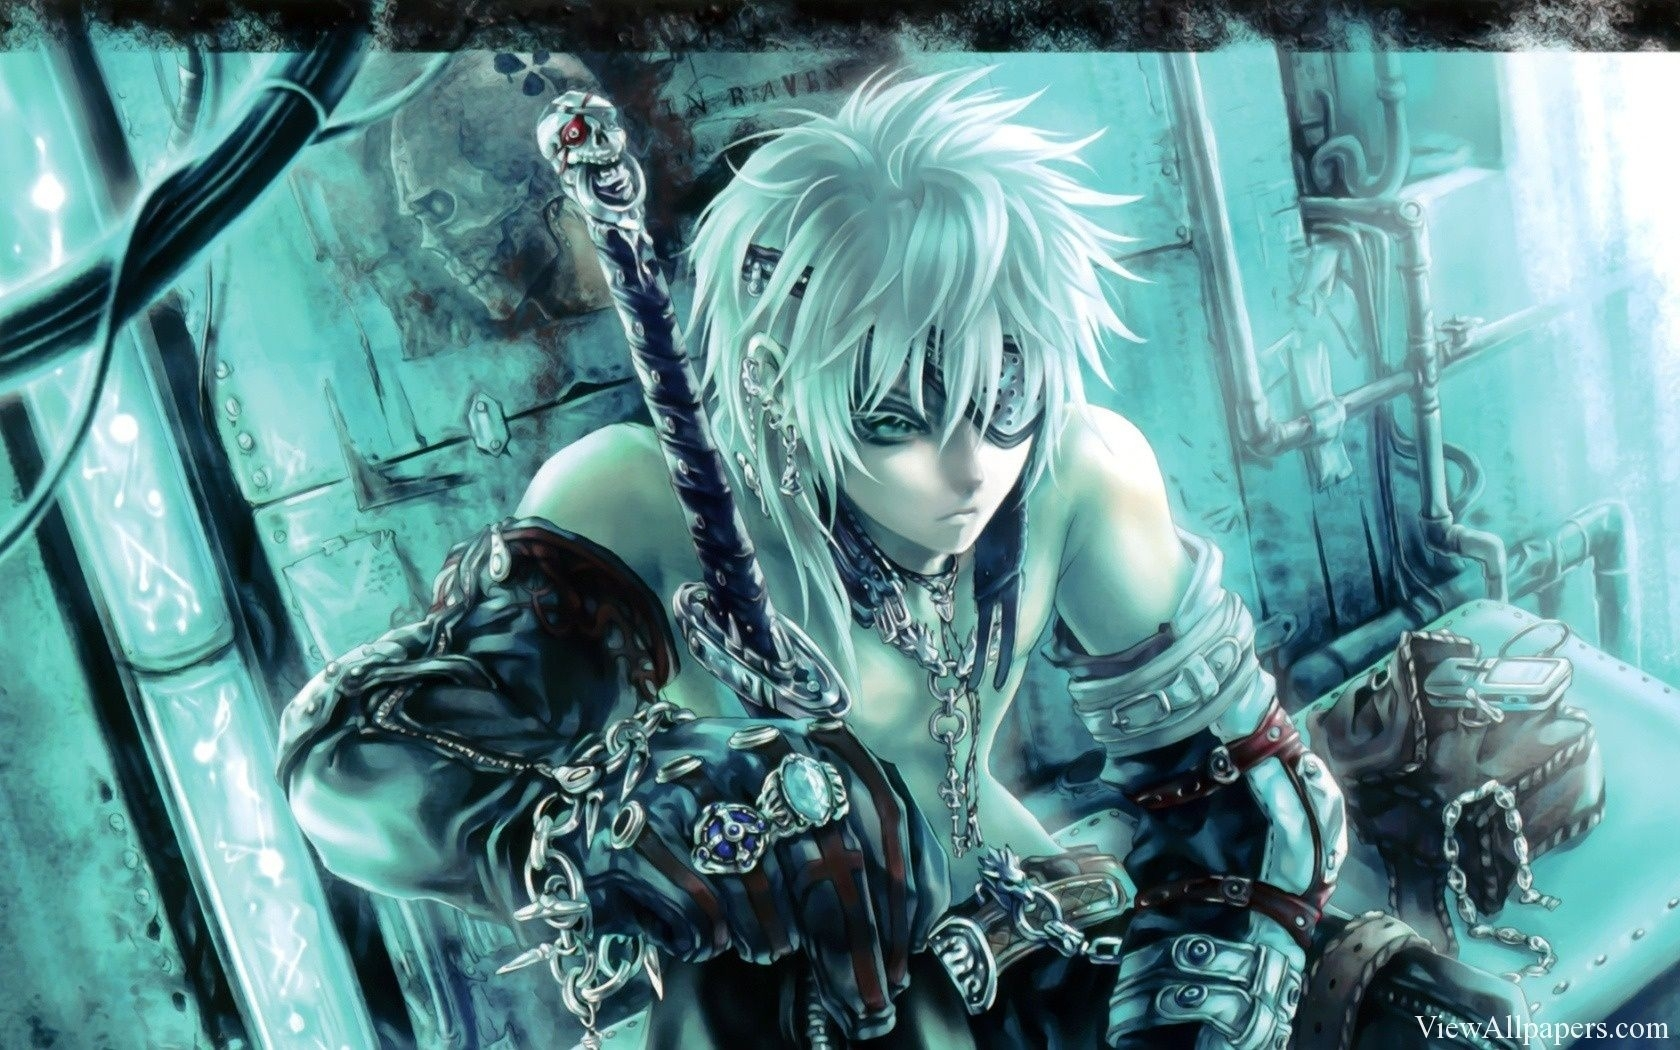 anime fighter warrior wallpaper high resolution, free download anime